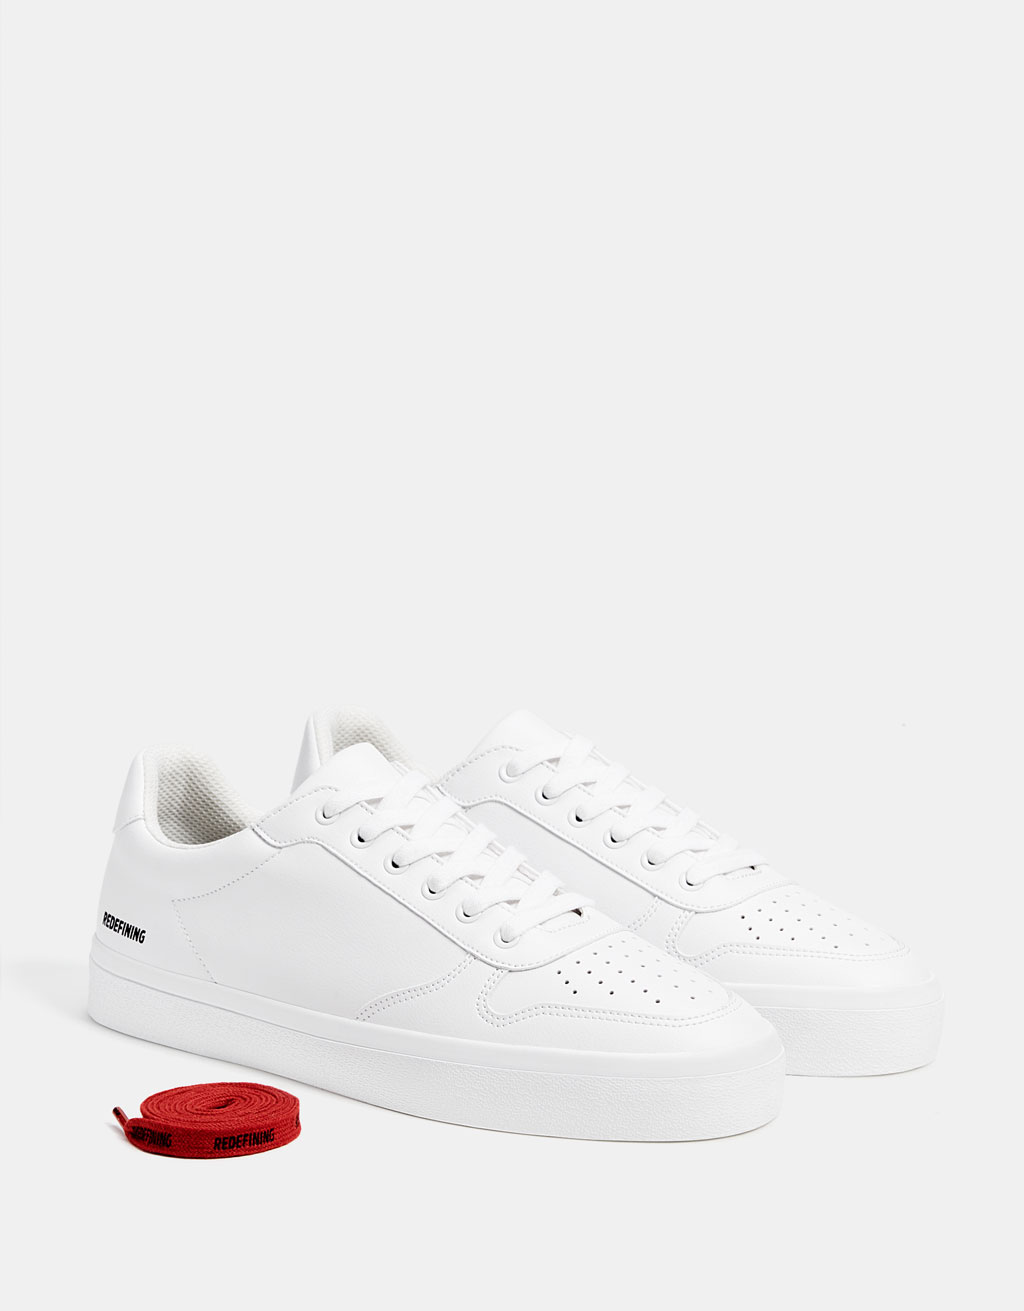 Men's white monochrome sneakers with slogan